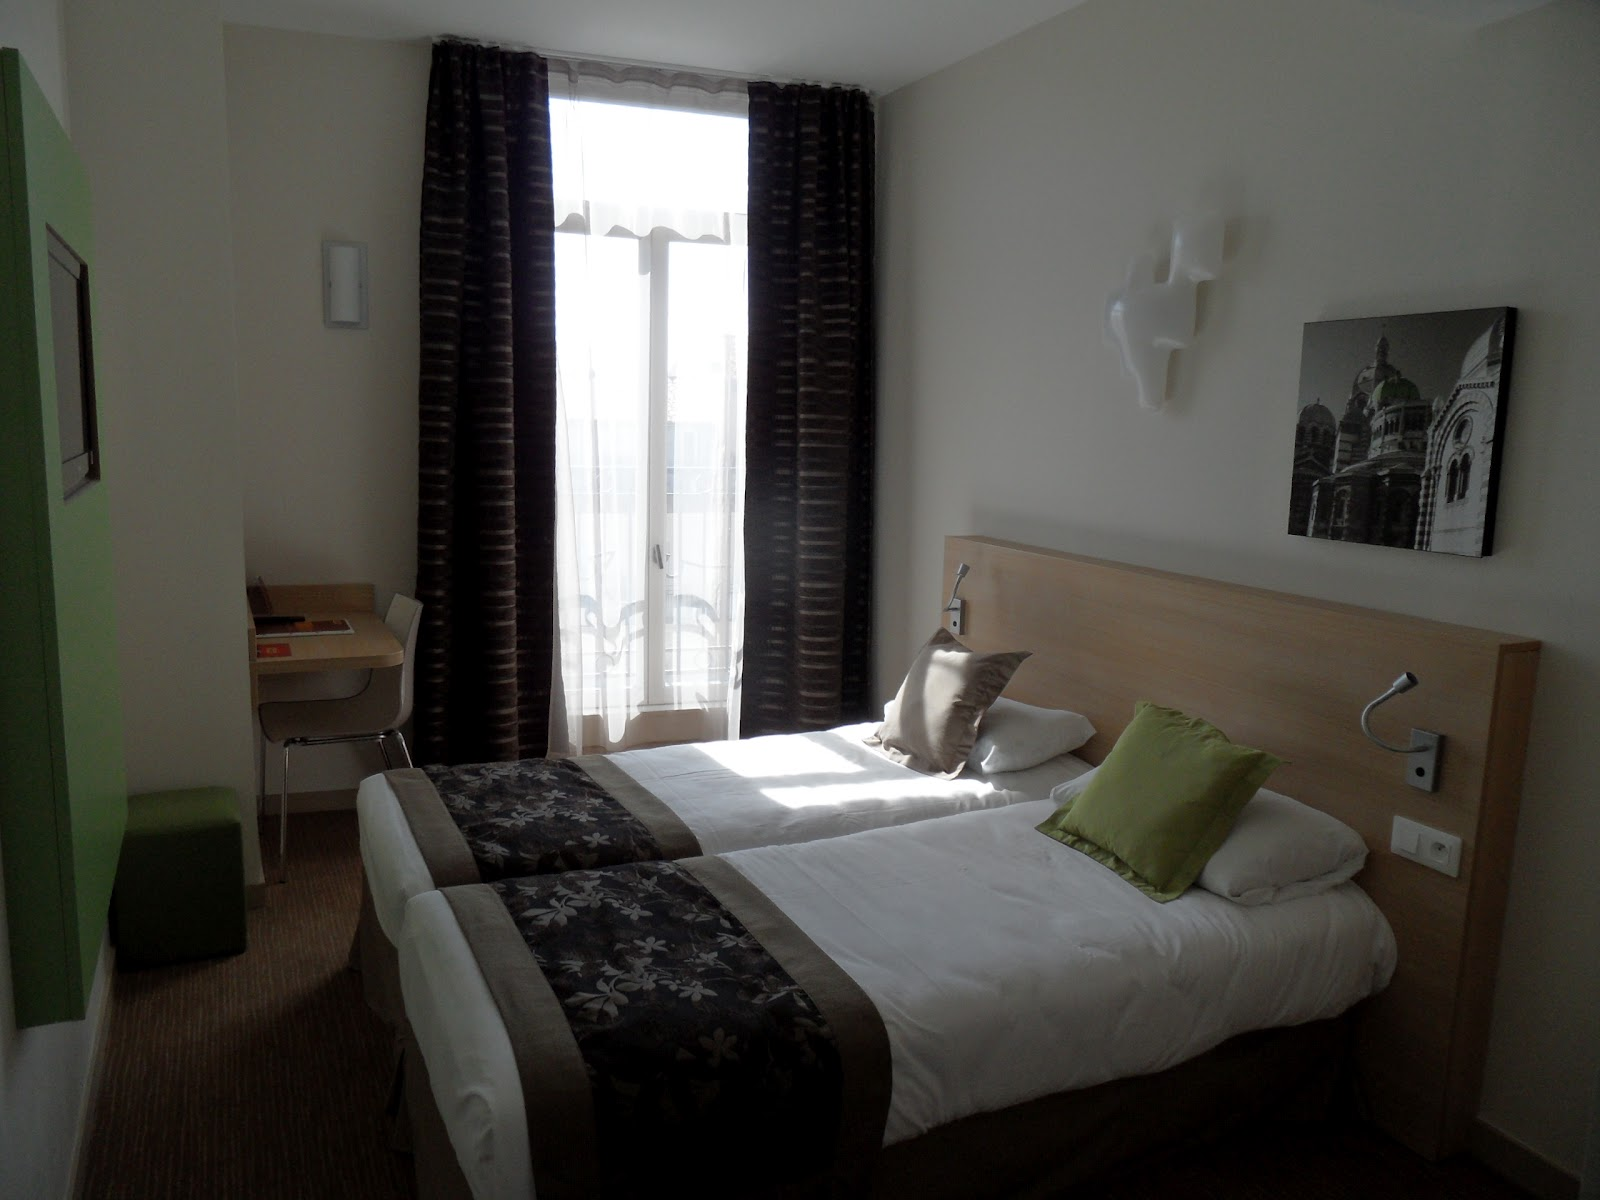 Hotel balladins marseille saint charles chambre twin for Chambre 2 lits